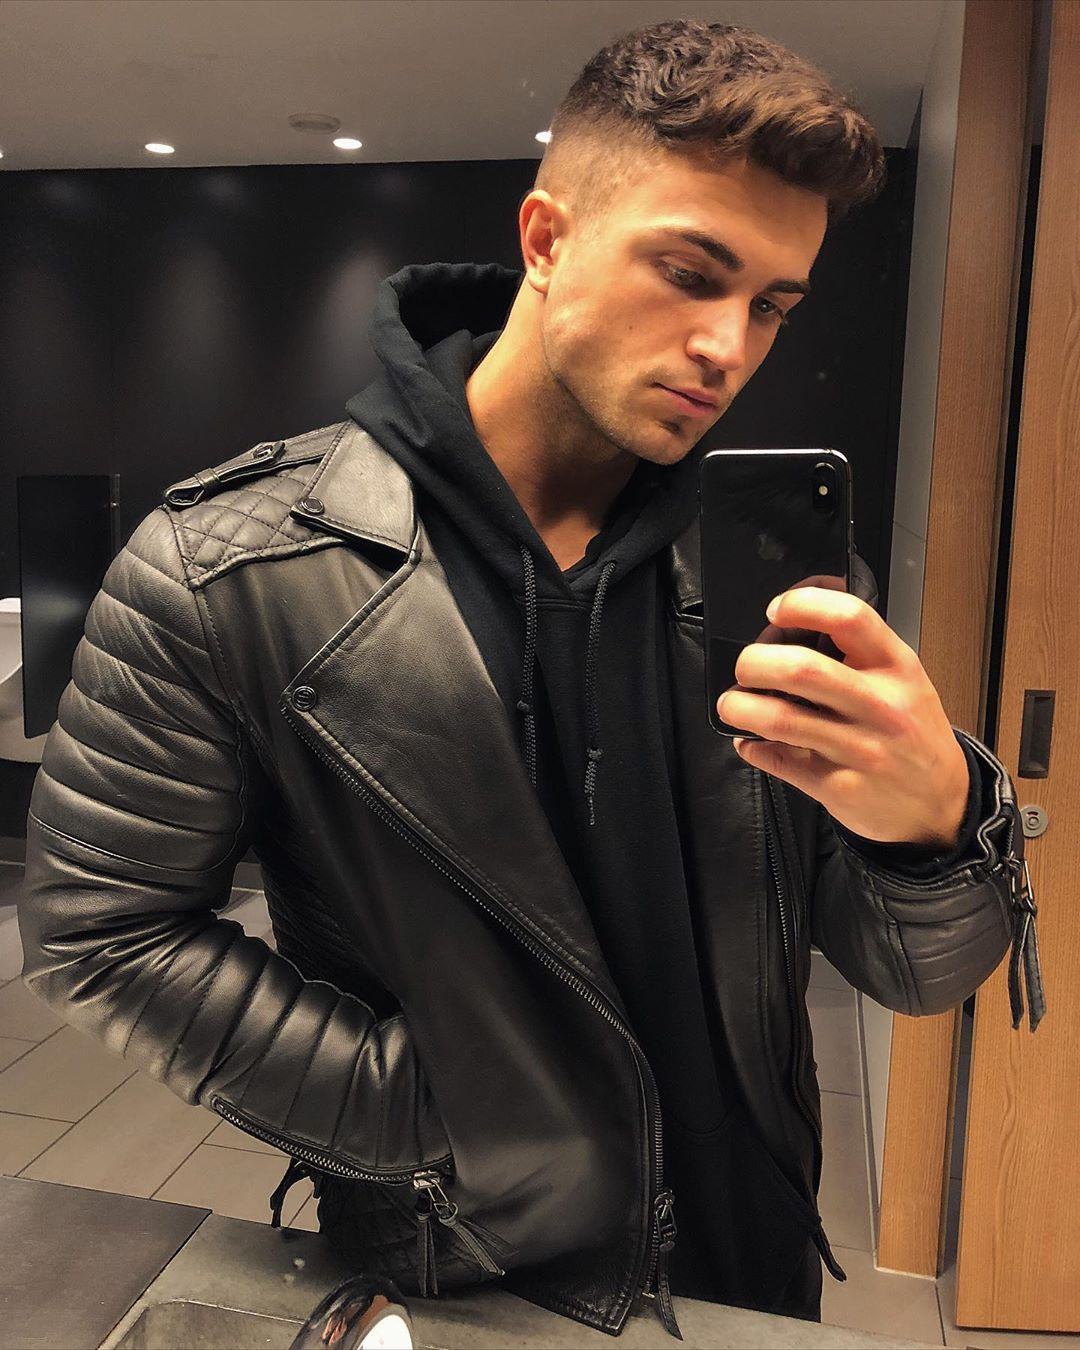 A Lot Can Change In A Year Throwback Fashion Swag Style Cute Coiffure Homme Style Coiffure Homme Cheveux Court Coiffure Homme